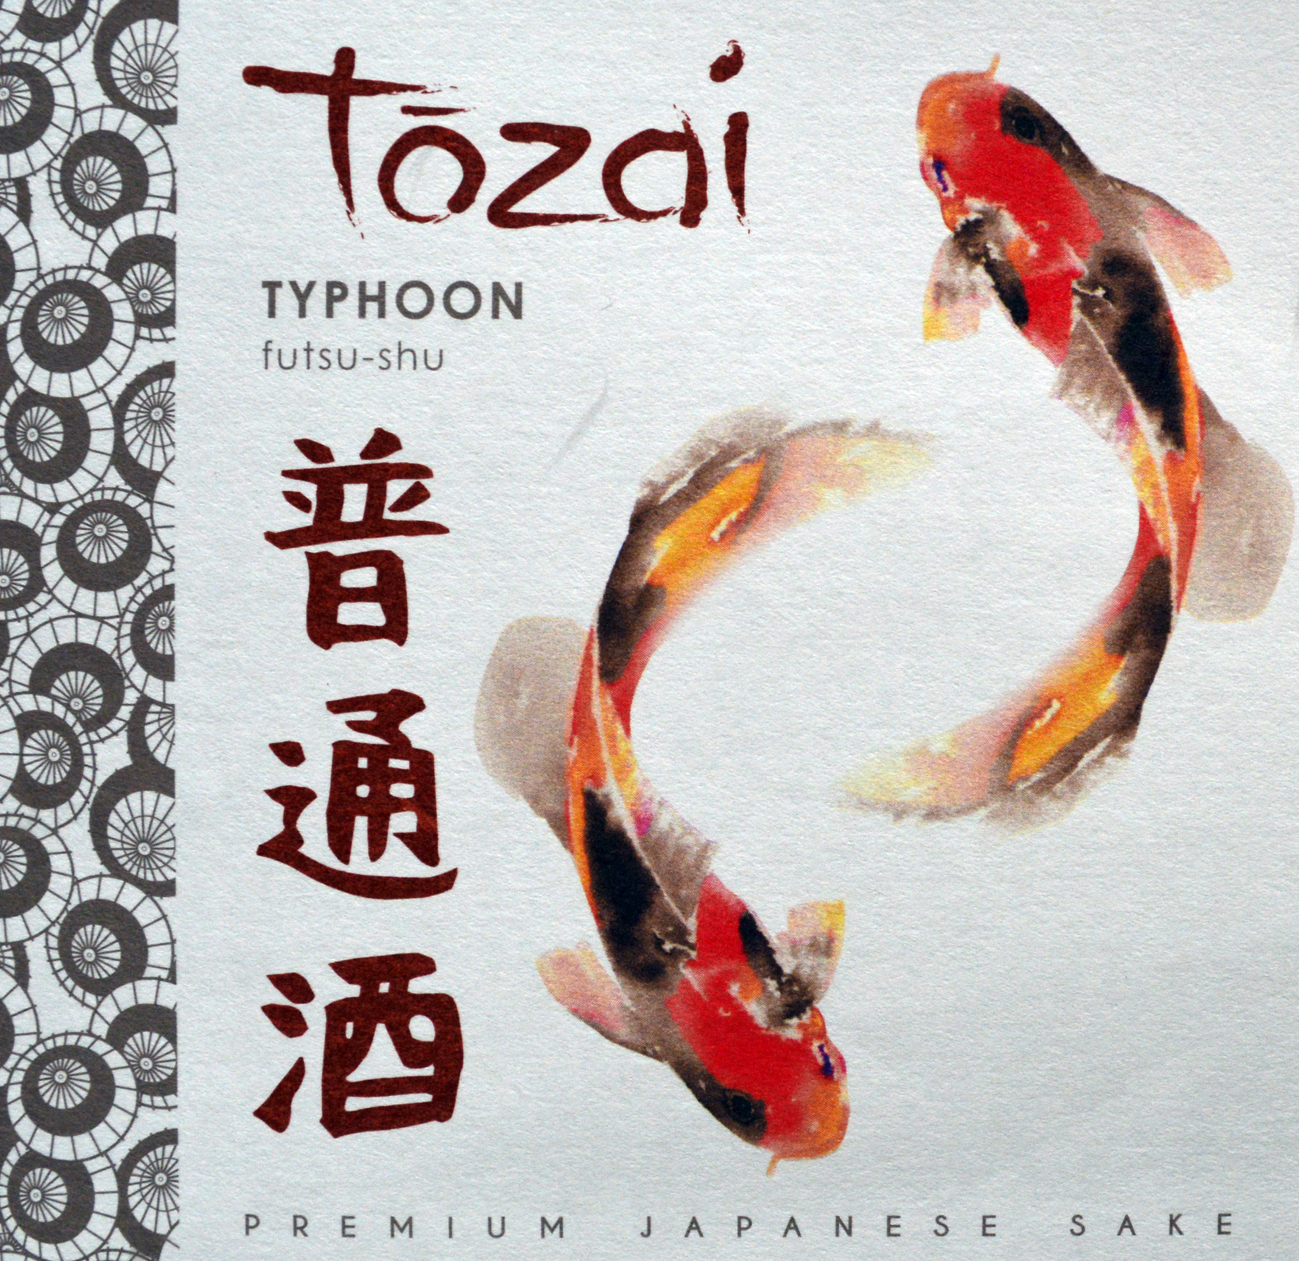 N.V. Tozai Sake Typhoon Futsu 720 ml